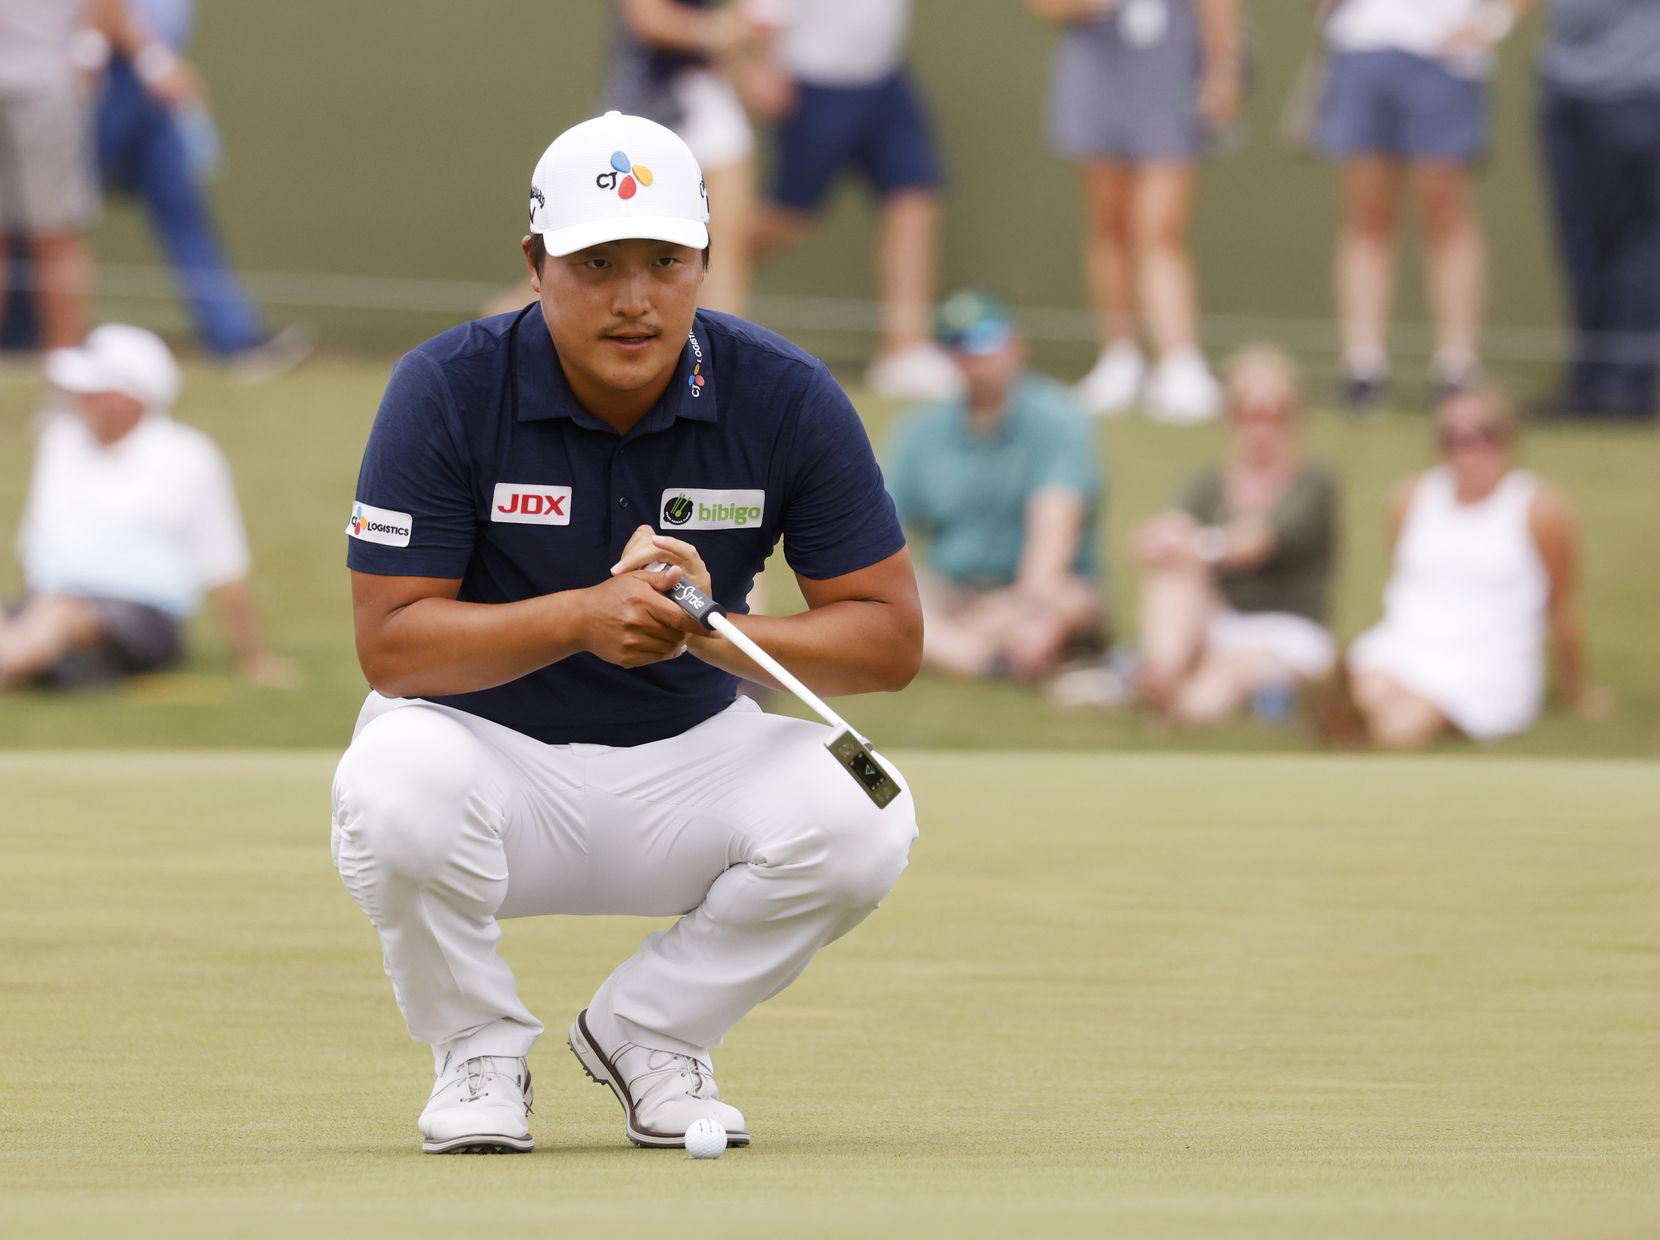 Kyoung-Hoon Lee lines up his putt on the 16th hole during round 3 of the AT&T Byron Nelson  at TPC Craig Ranch on Saturday, May 15, 2021 in McKinney, Texas. (Vernon Bryant/The Dallas Morning News)